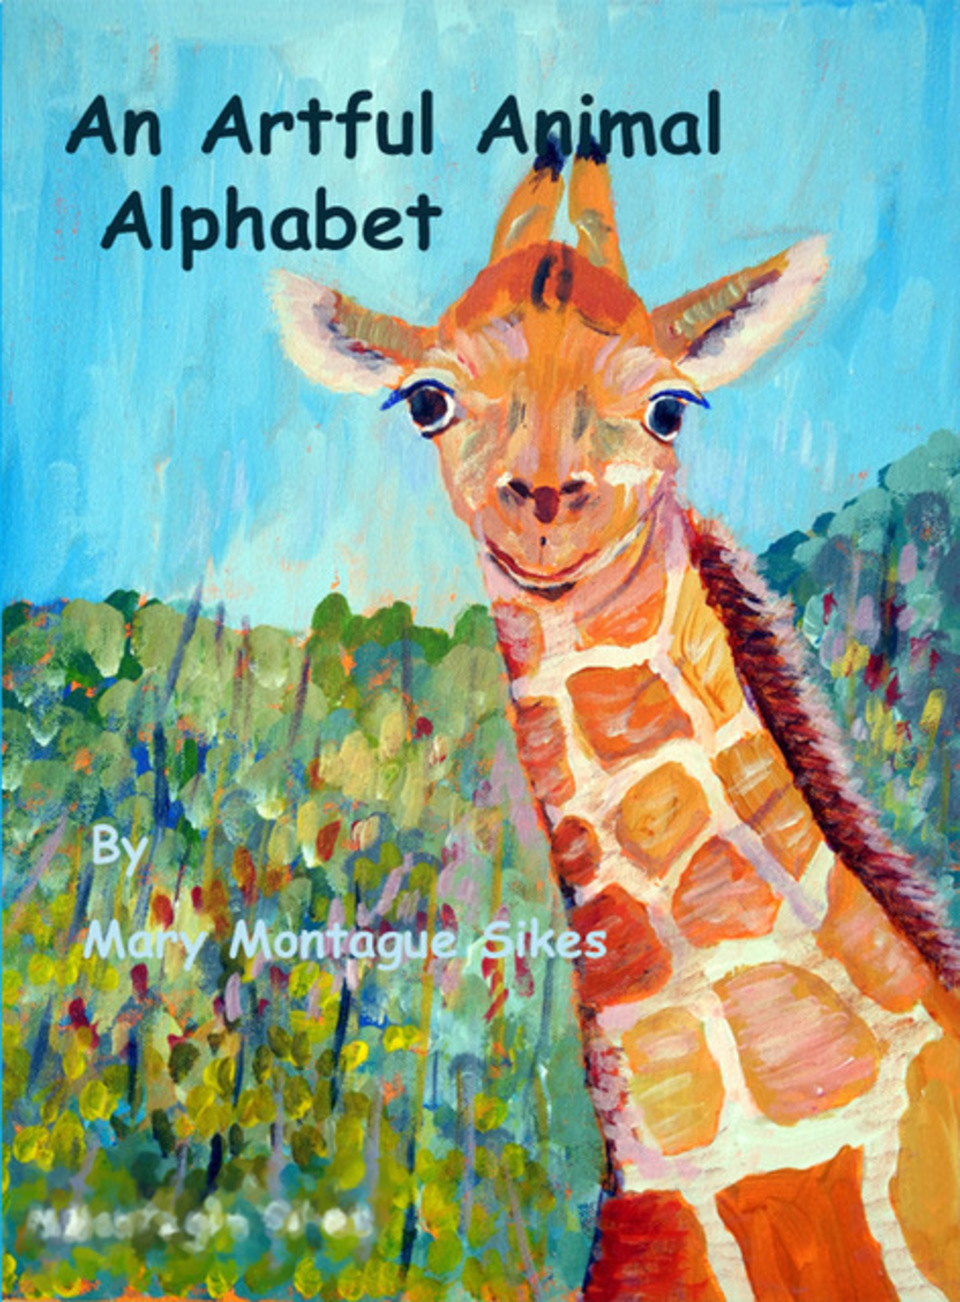 An Artful Animal Alphabet